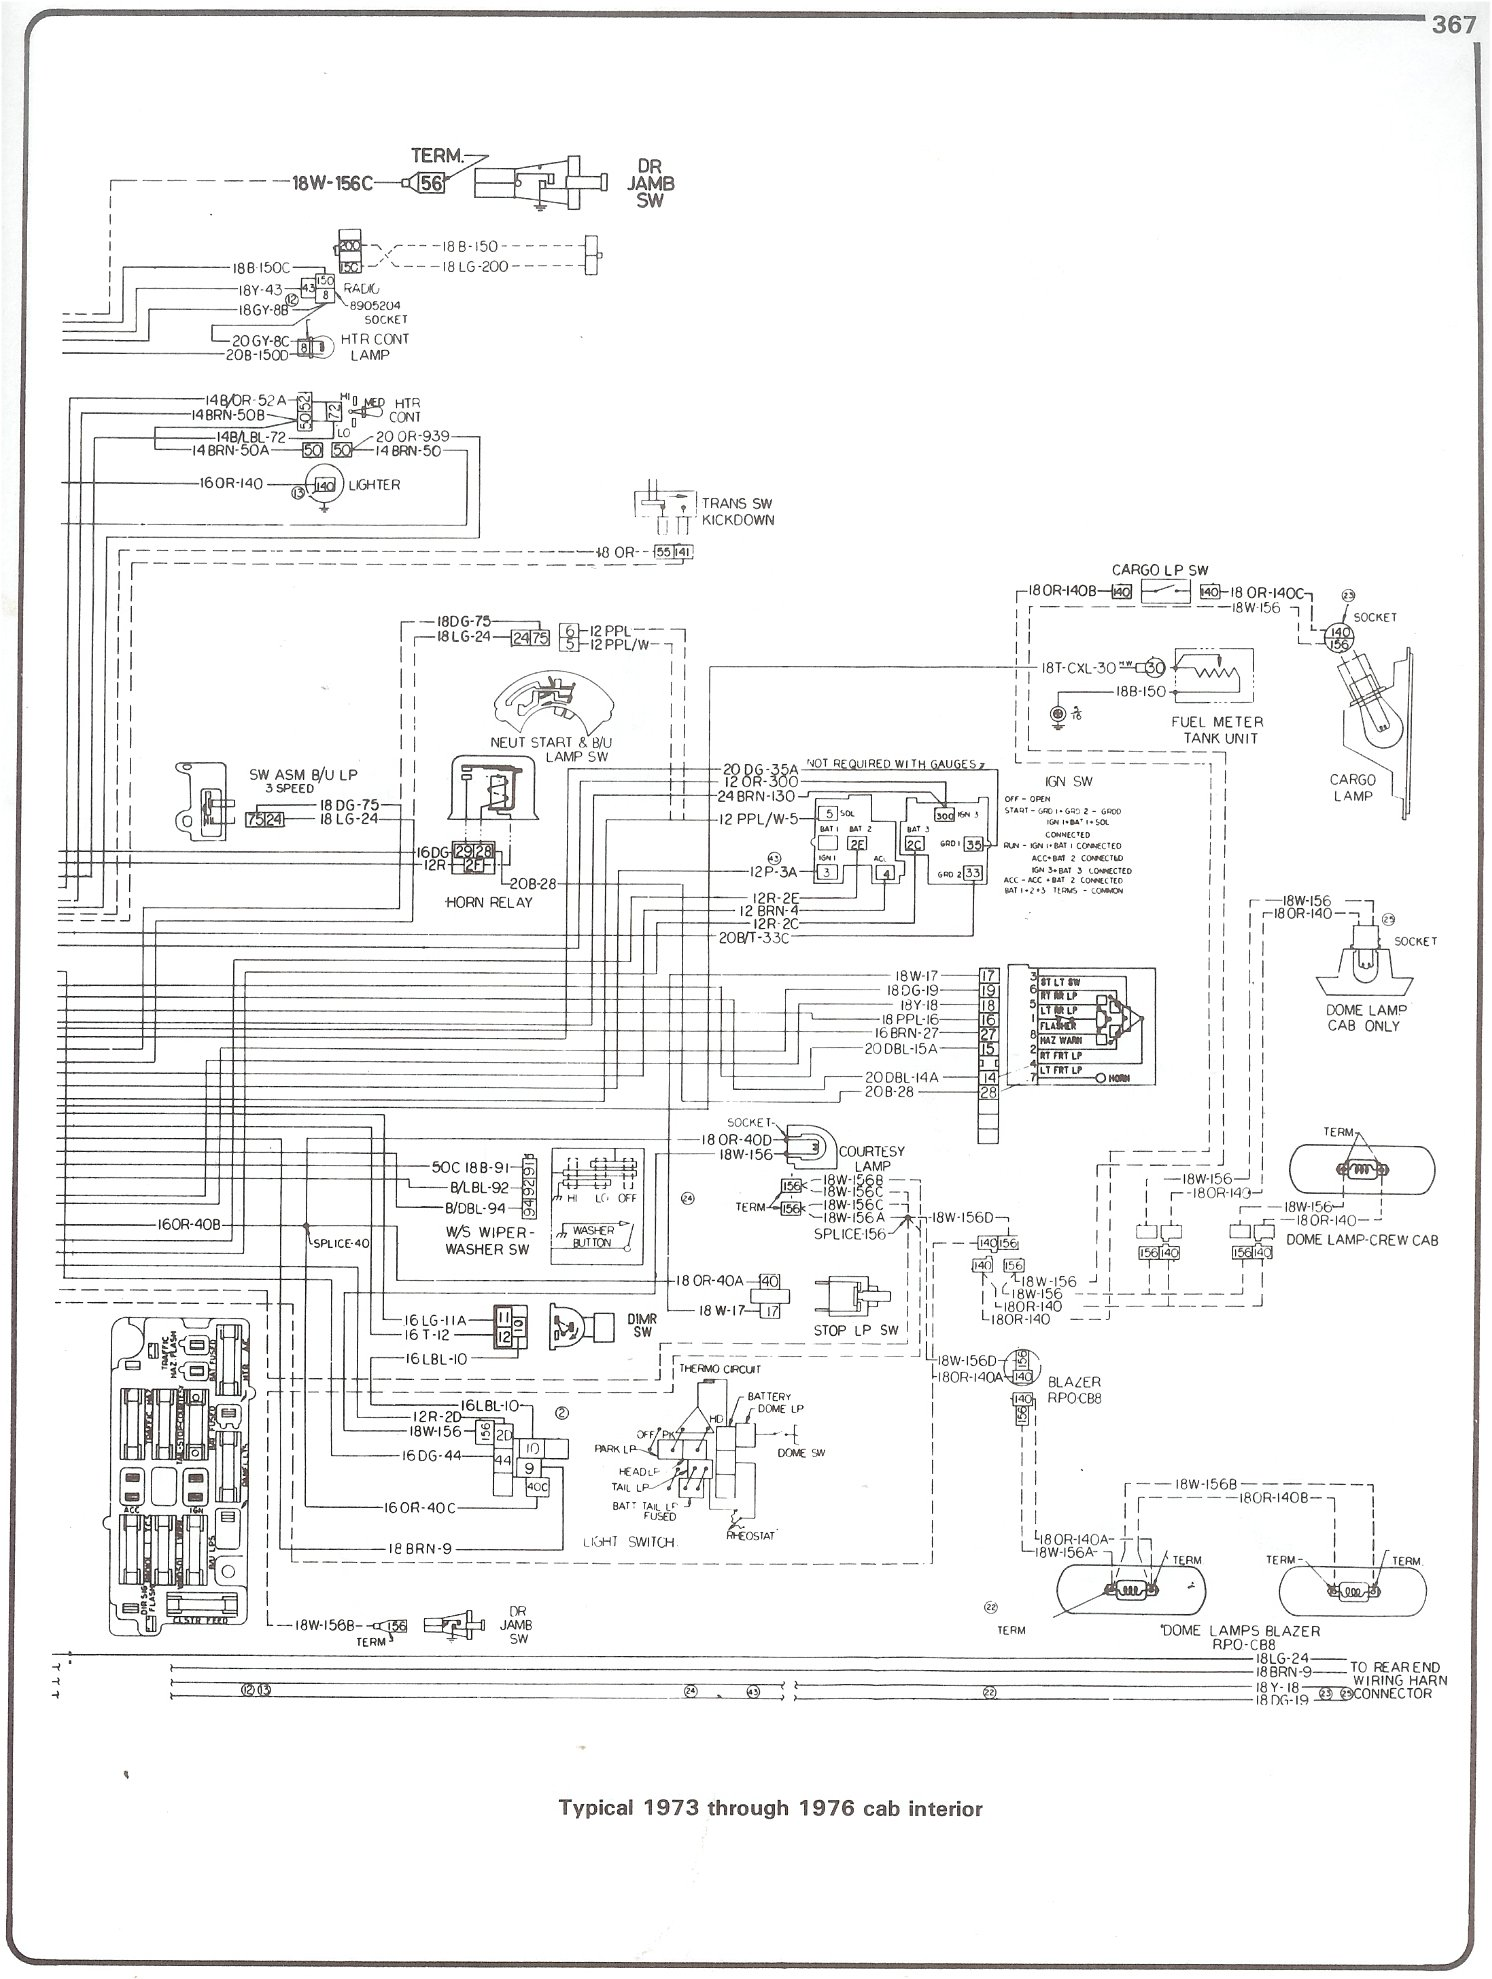 87 Chevy Truck Fuse Block Diagram - Wiring Diagrams Folder on